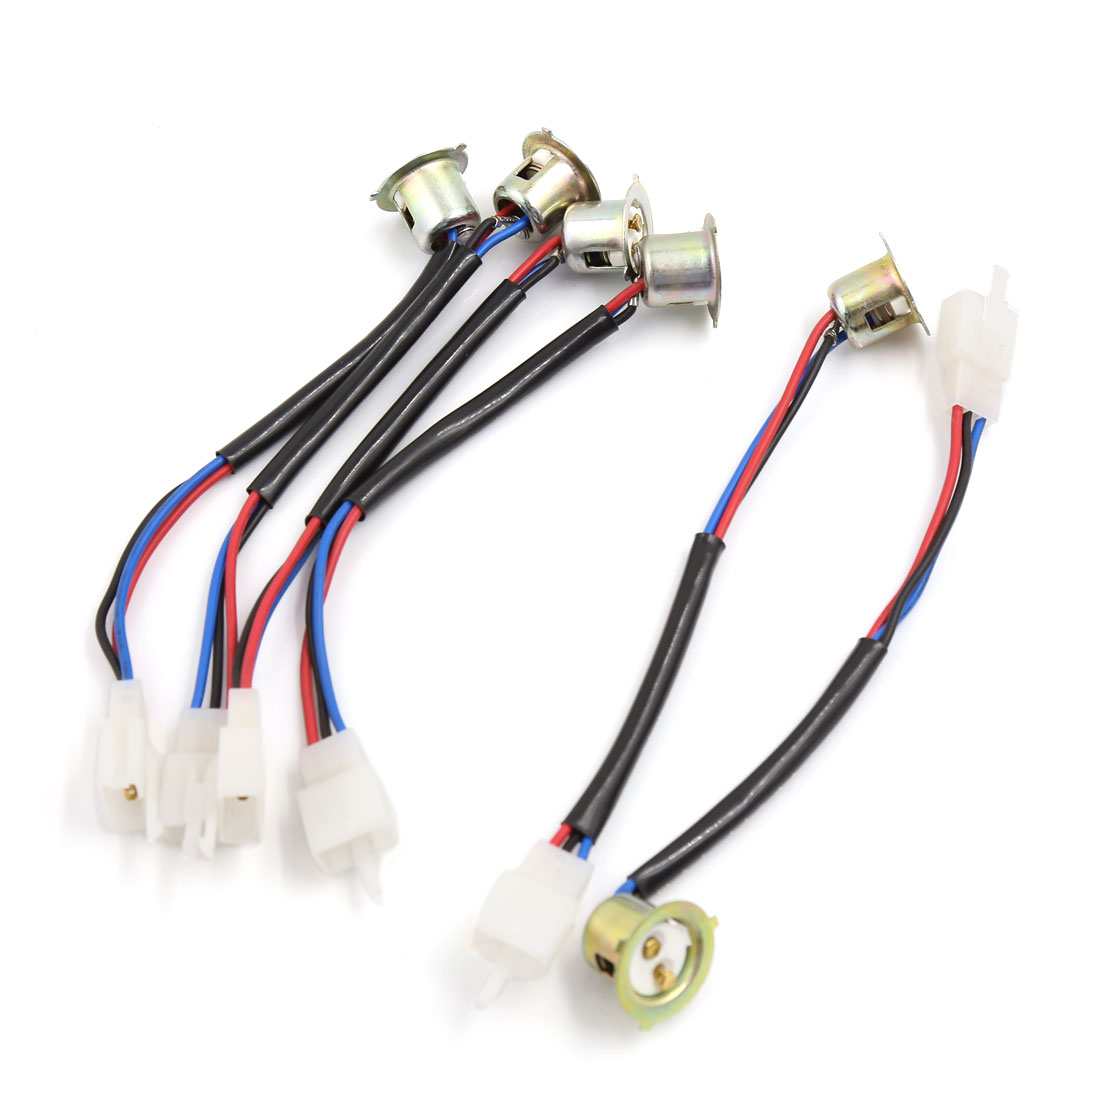 Unique Bargains 6 Pcs 3 Pins Pre-Wired Headlight Head Lamps Socket Holder for DAYANG Motorcycle